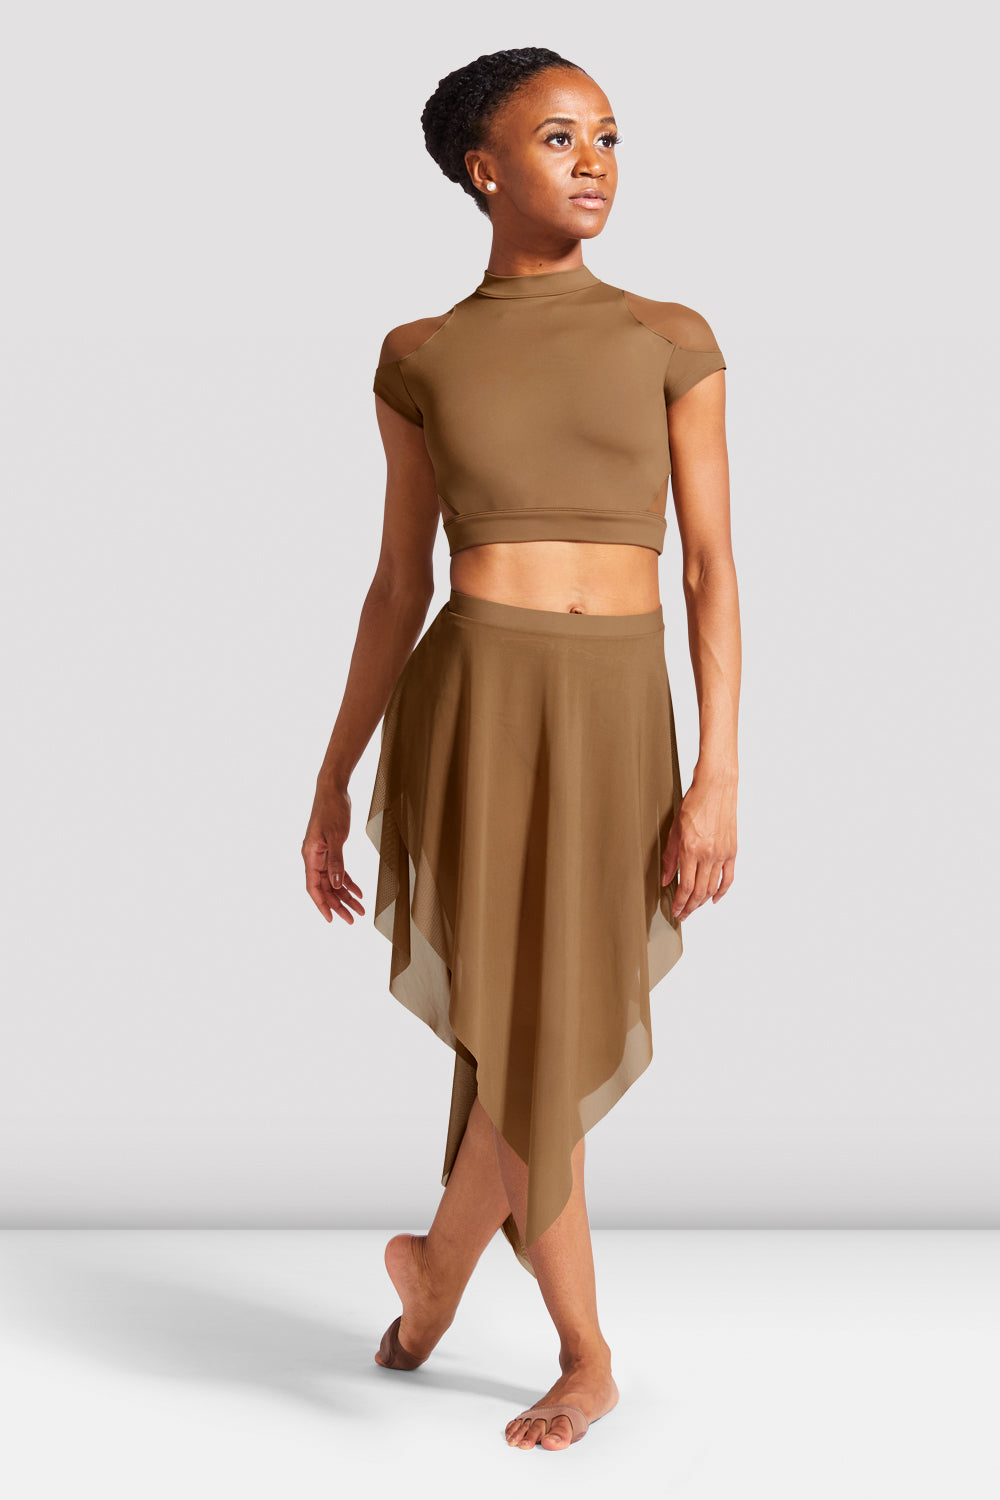 Ladies Mireya Asymmetric Skirt - BLOCH US